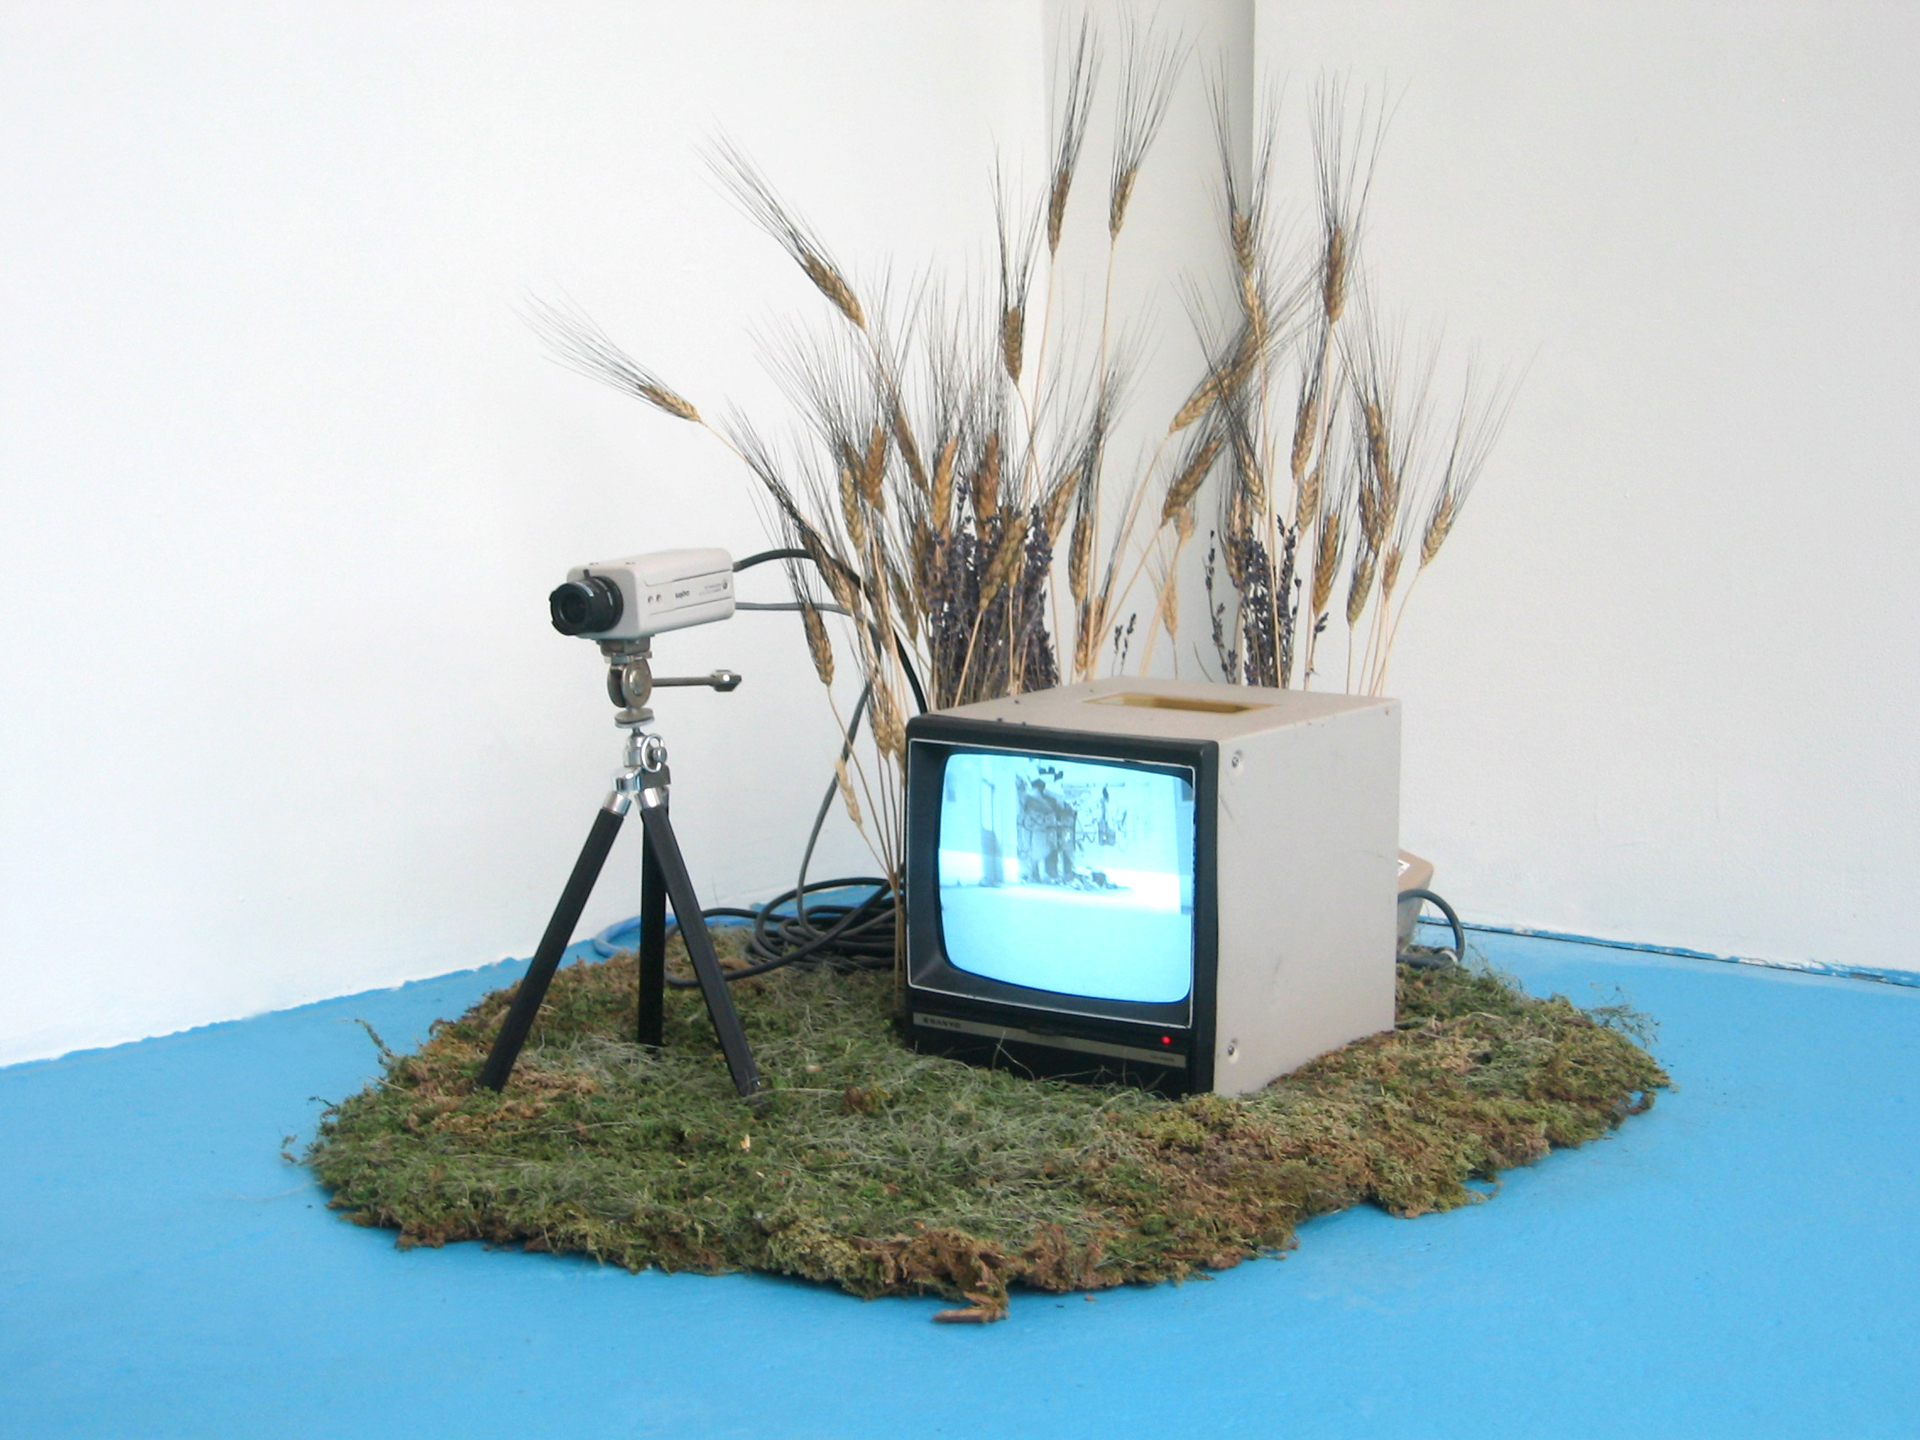 (installation view)    Aquatic Shadowing Surveyance (A.S.S.)    2005   surveillance equipment, man-made island, simulated body of water   dimensions vary